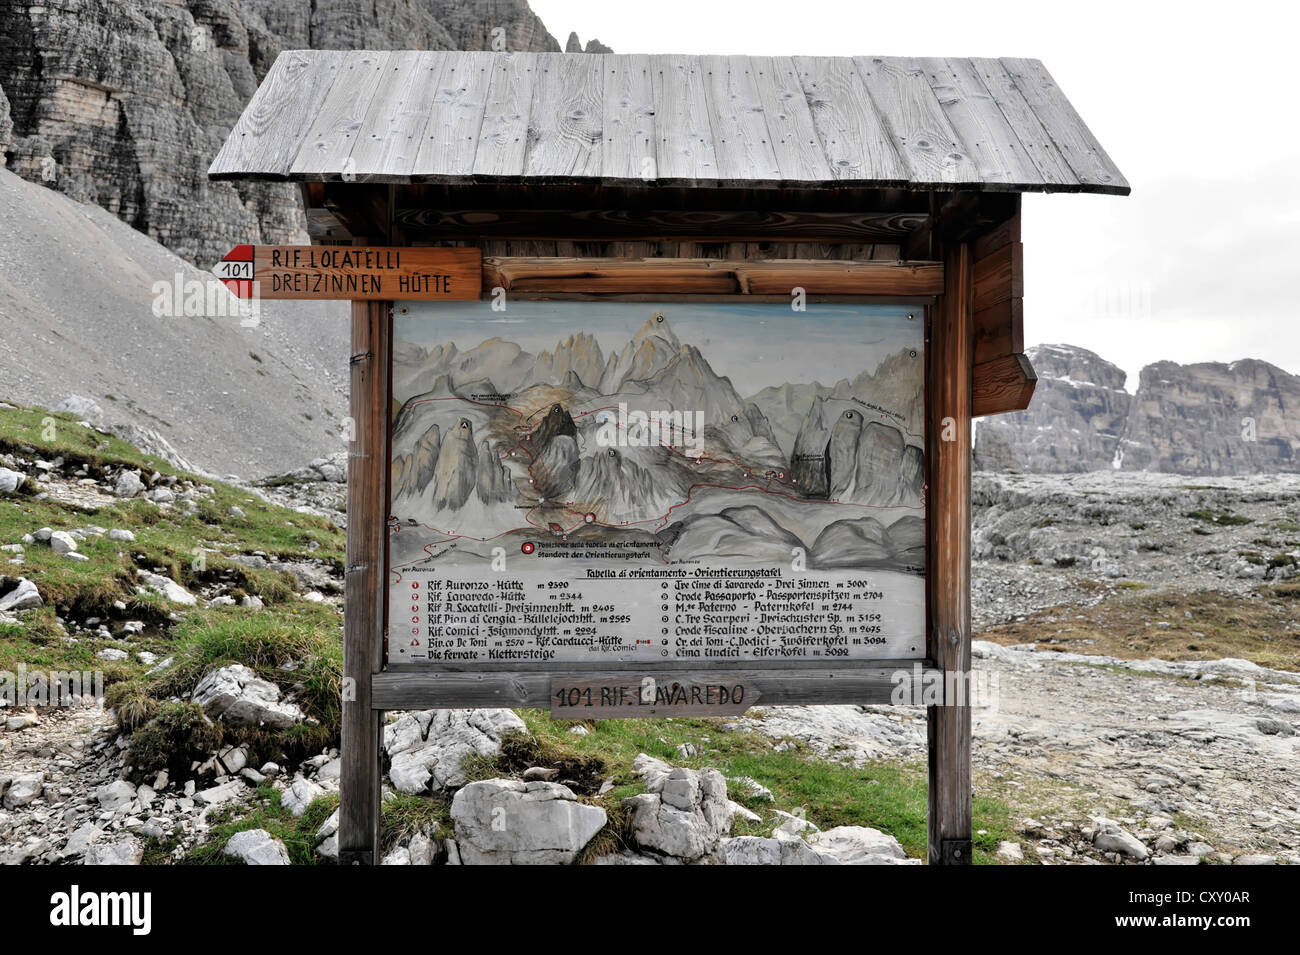 Information board for hiking trails, Three Peaks Trail, hiking trail sign for trail 101, Dolomites, Alto Adige, - Stock Image